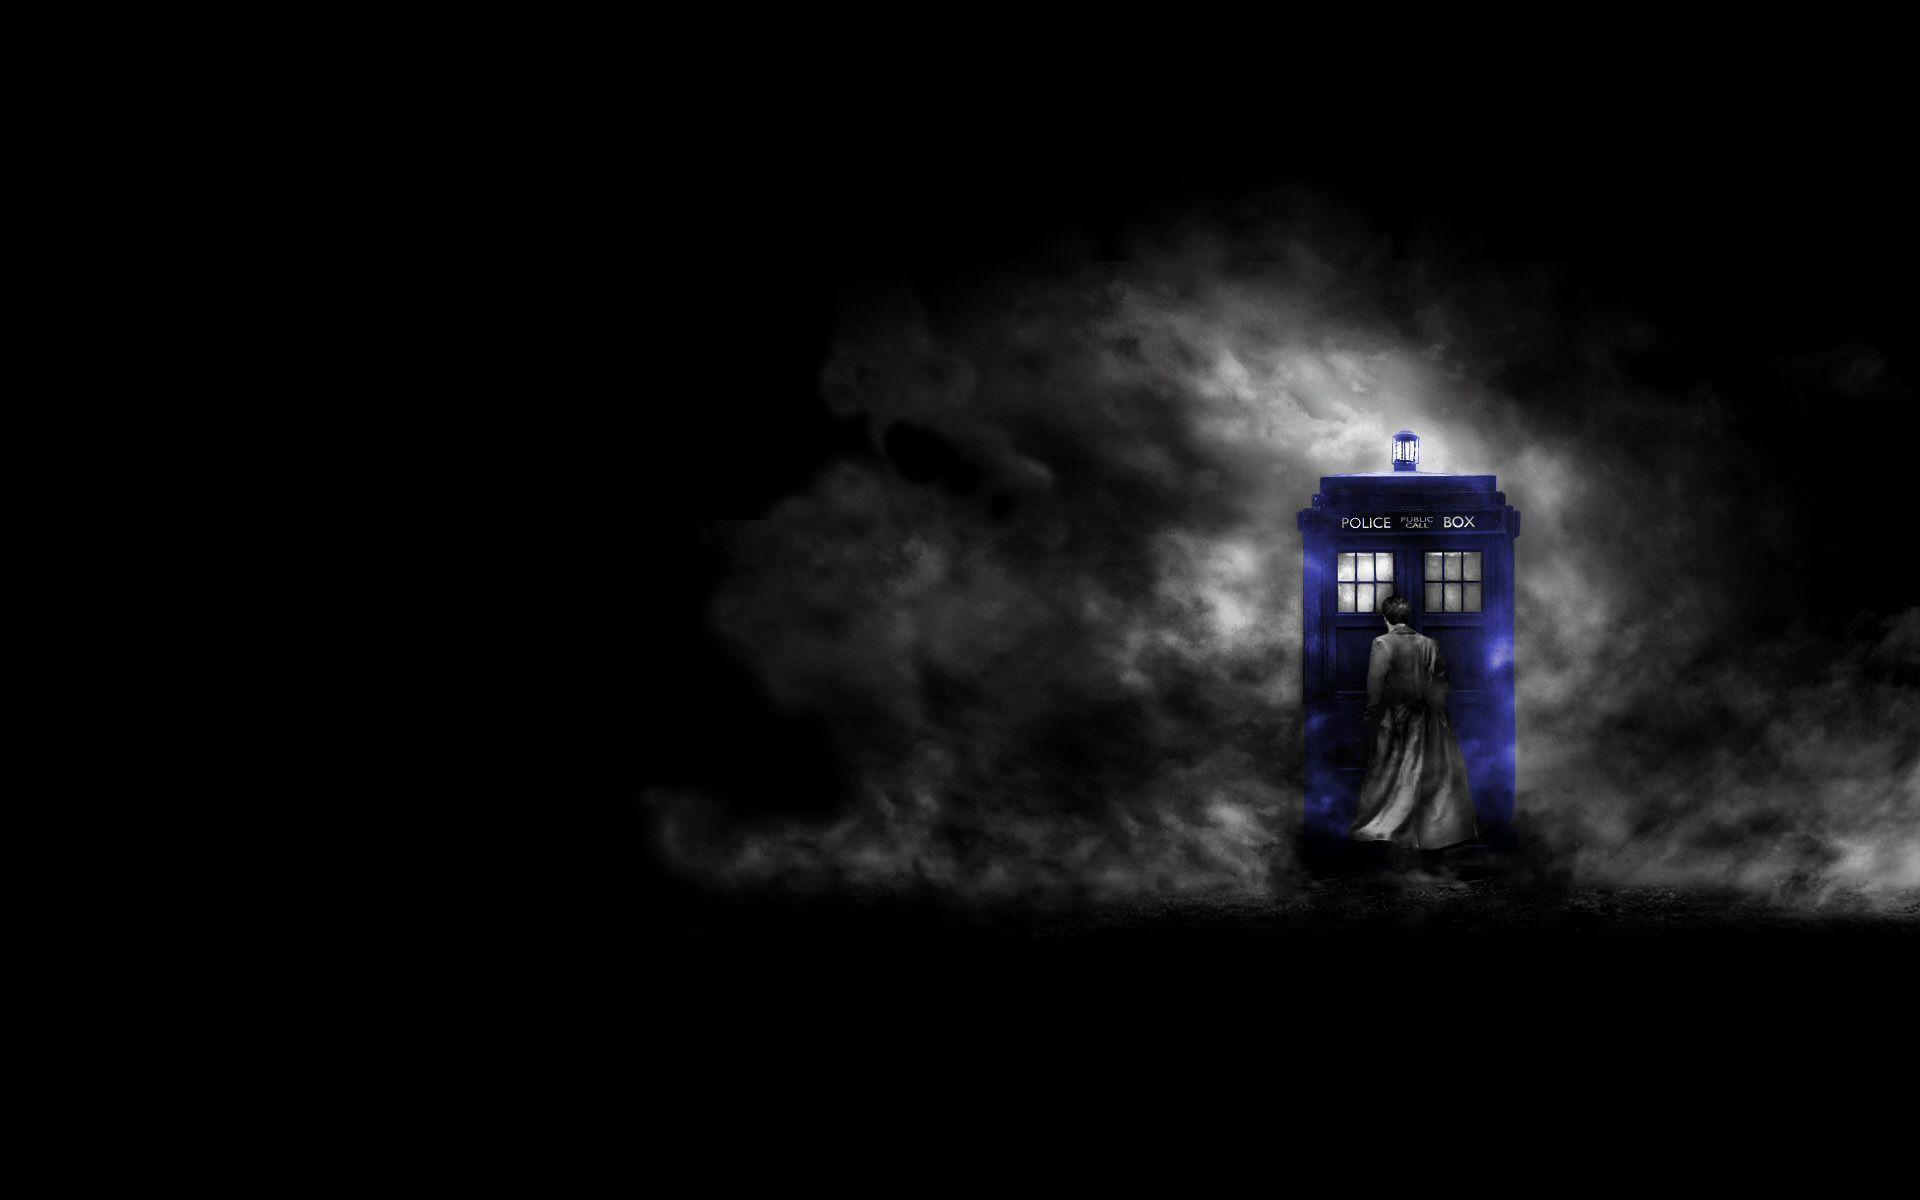 Dr Who Hd Wallpapers Top Free Dr Who Hd Backgrounds